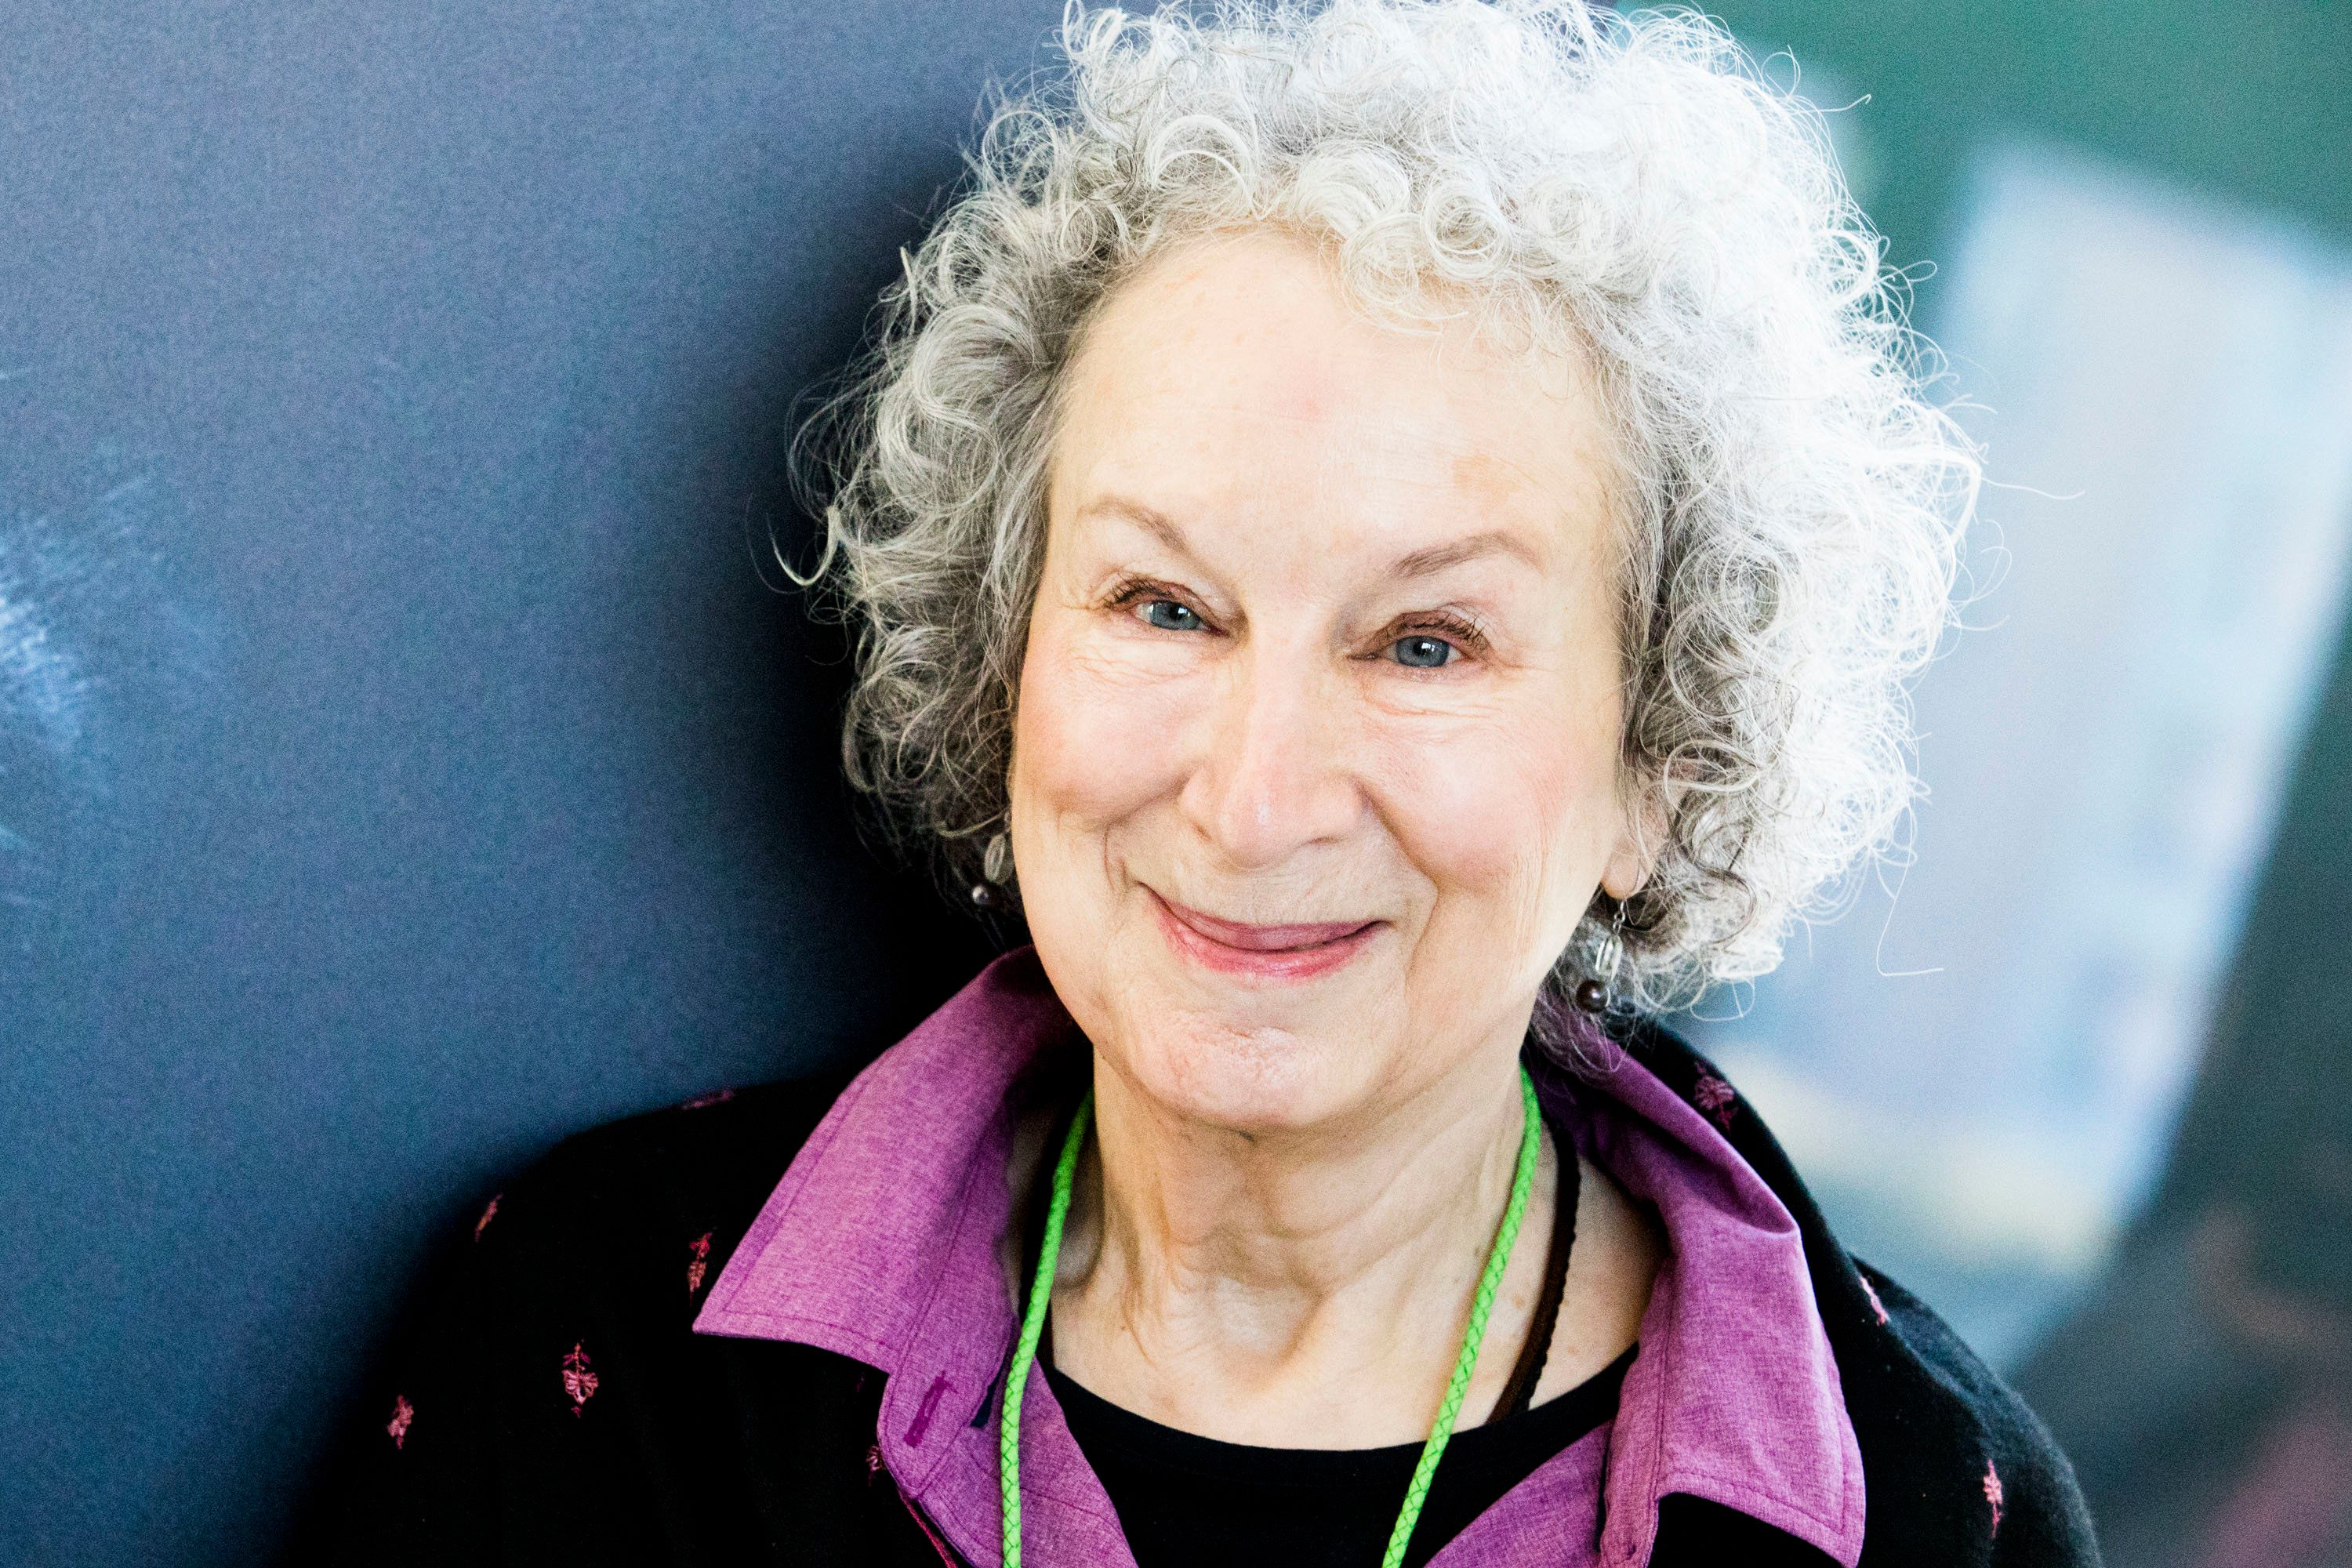 Margaret Atwood writing sequel to The Handmaid's Tale